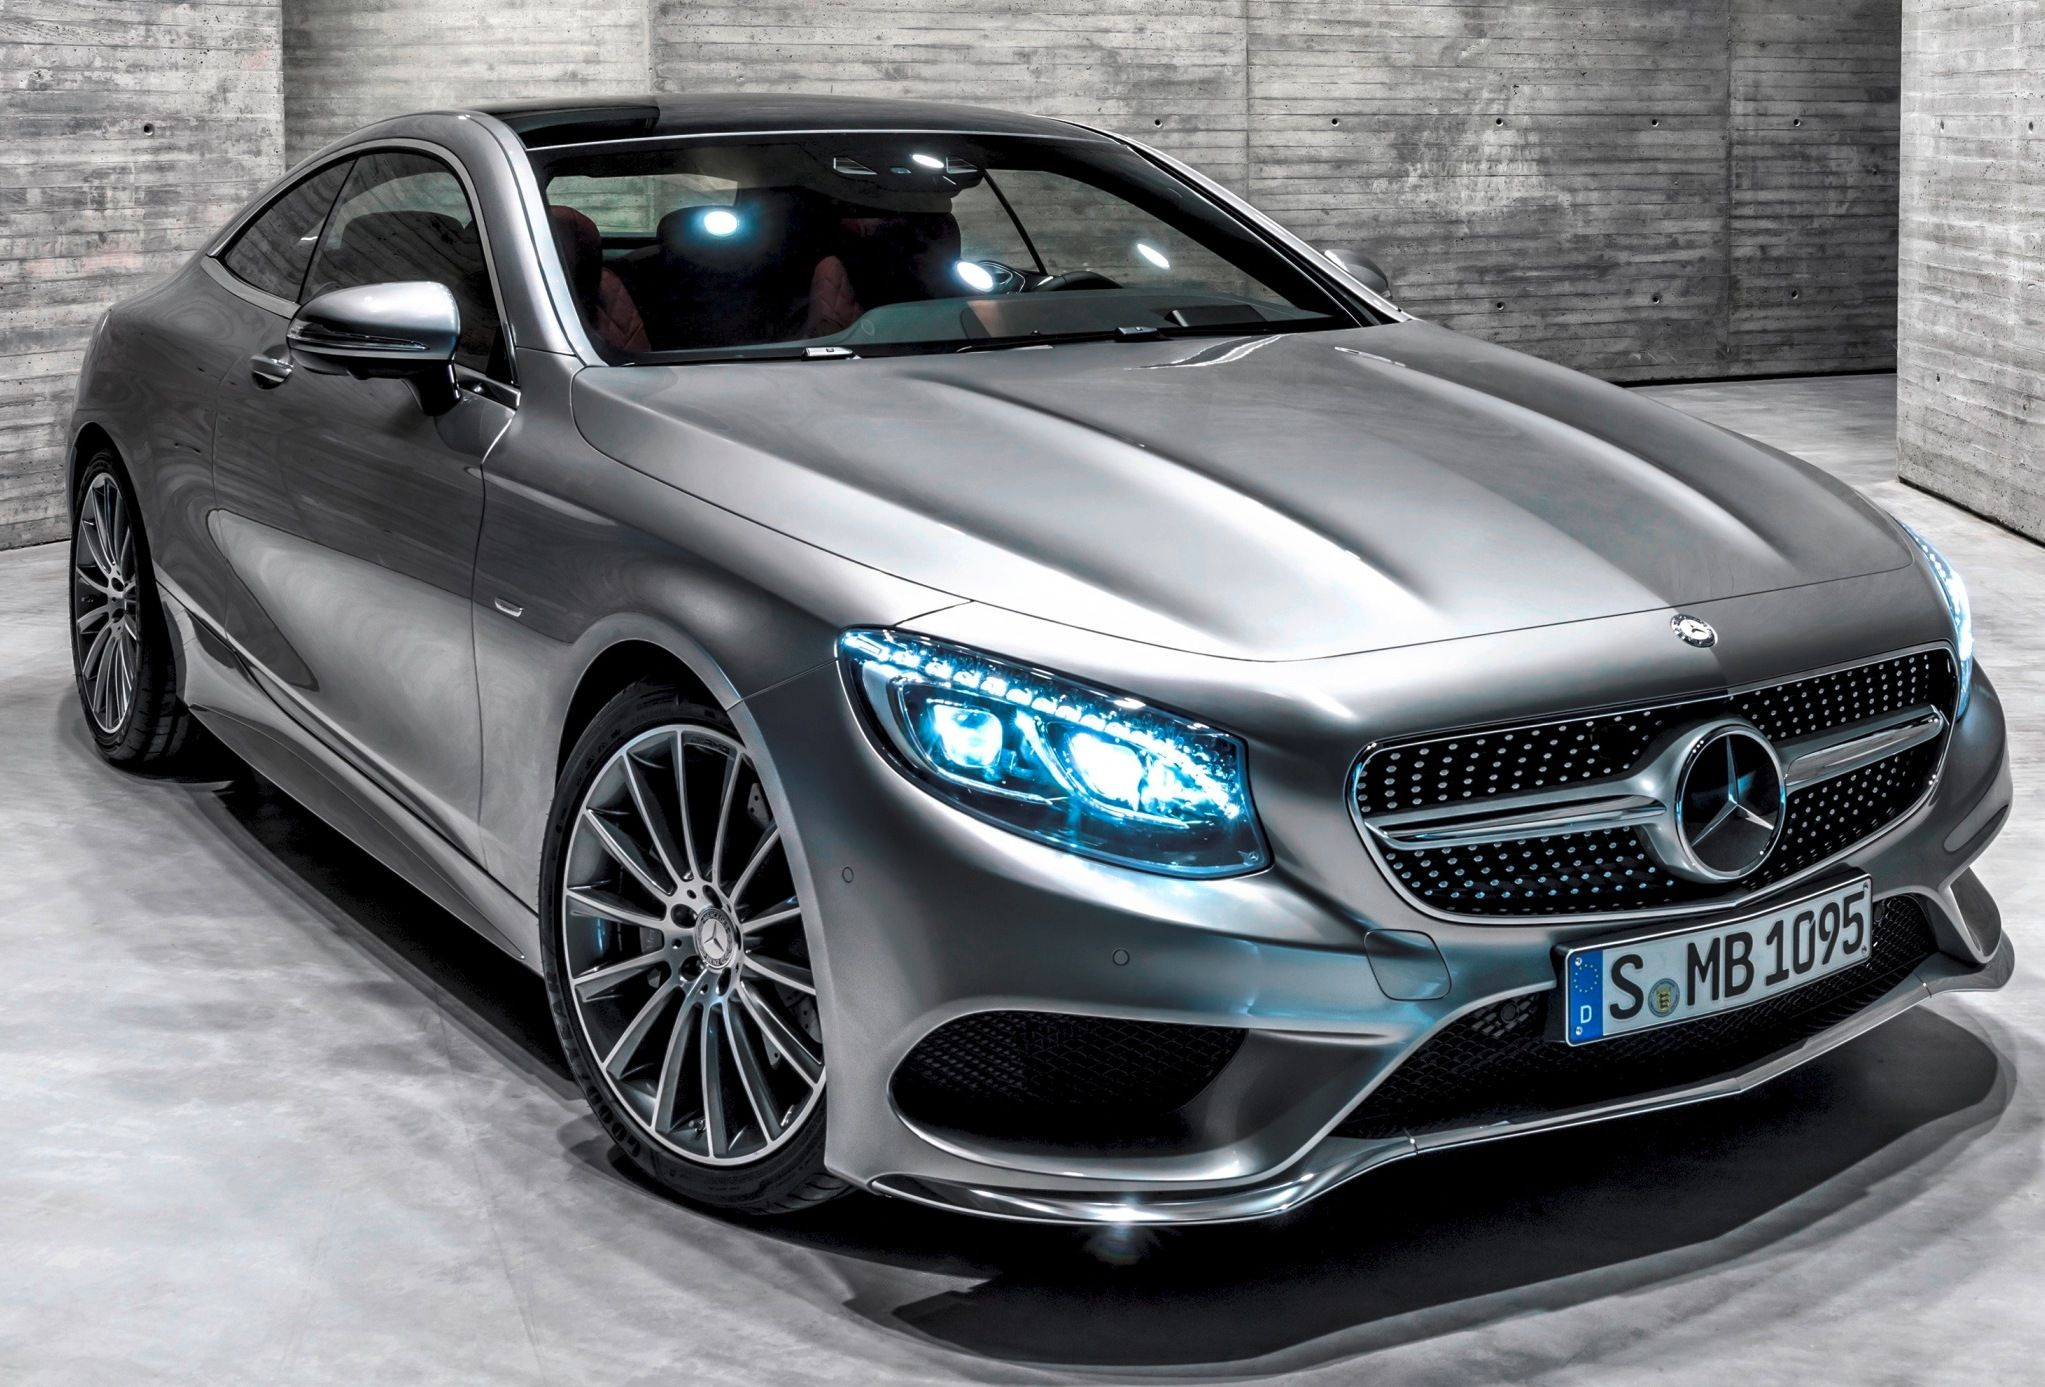 WOW! 2015 Mercedes-Benz S550 4MATIC Coupe — High-Sd, High-Fashion